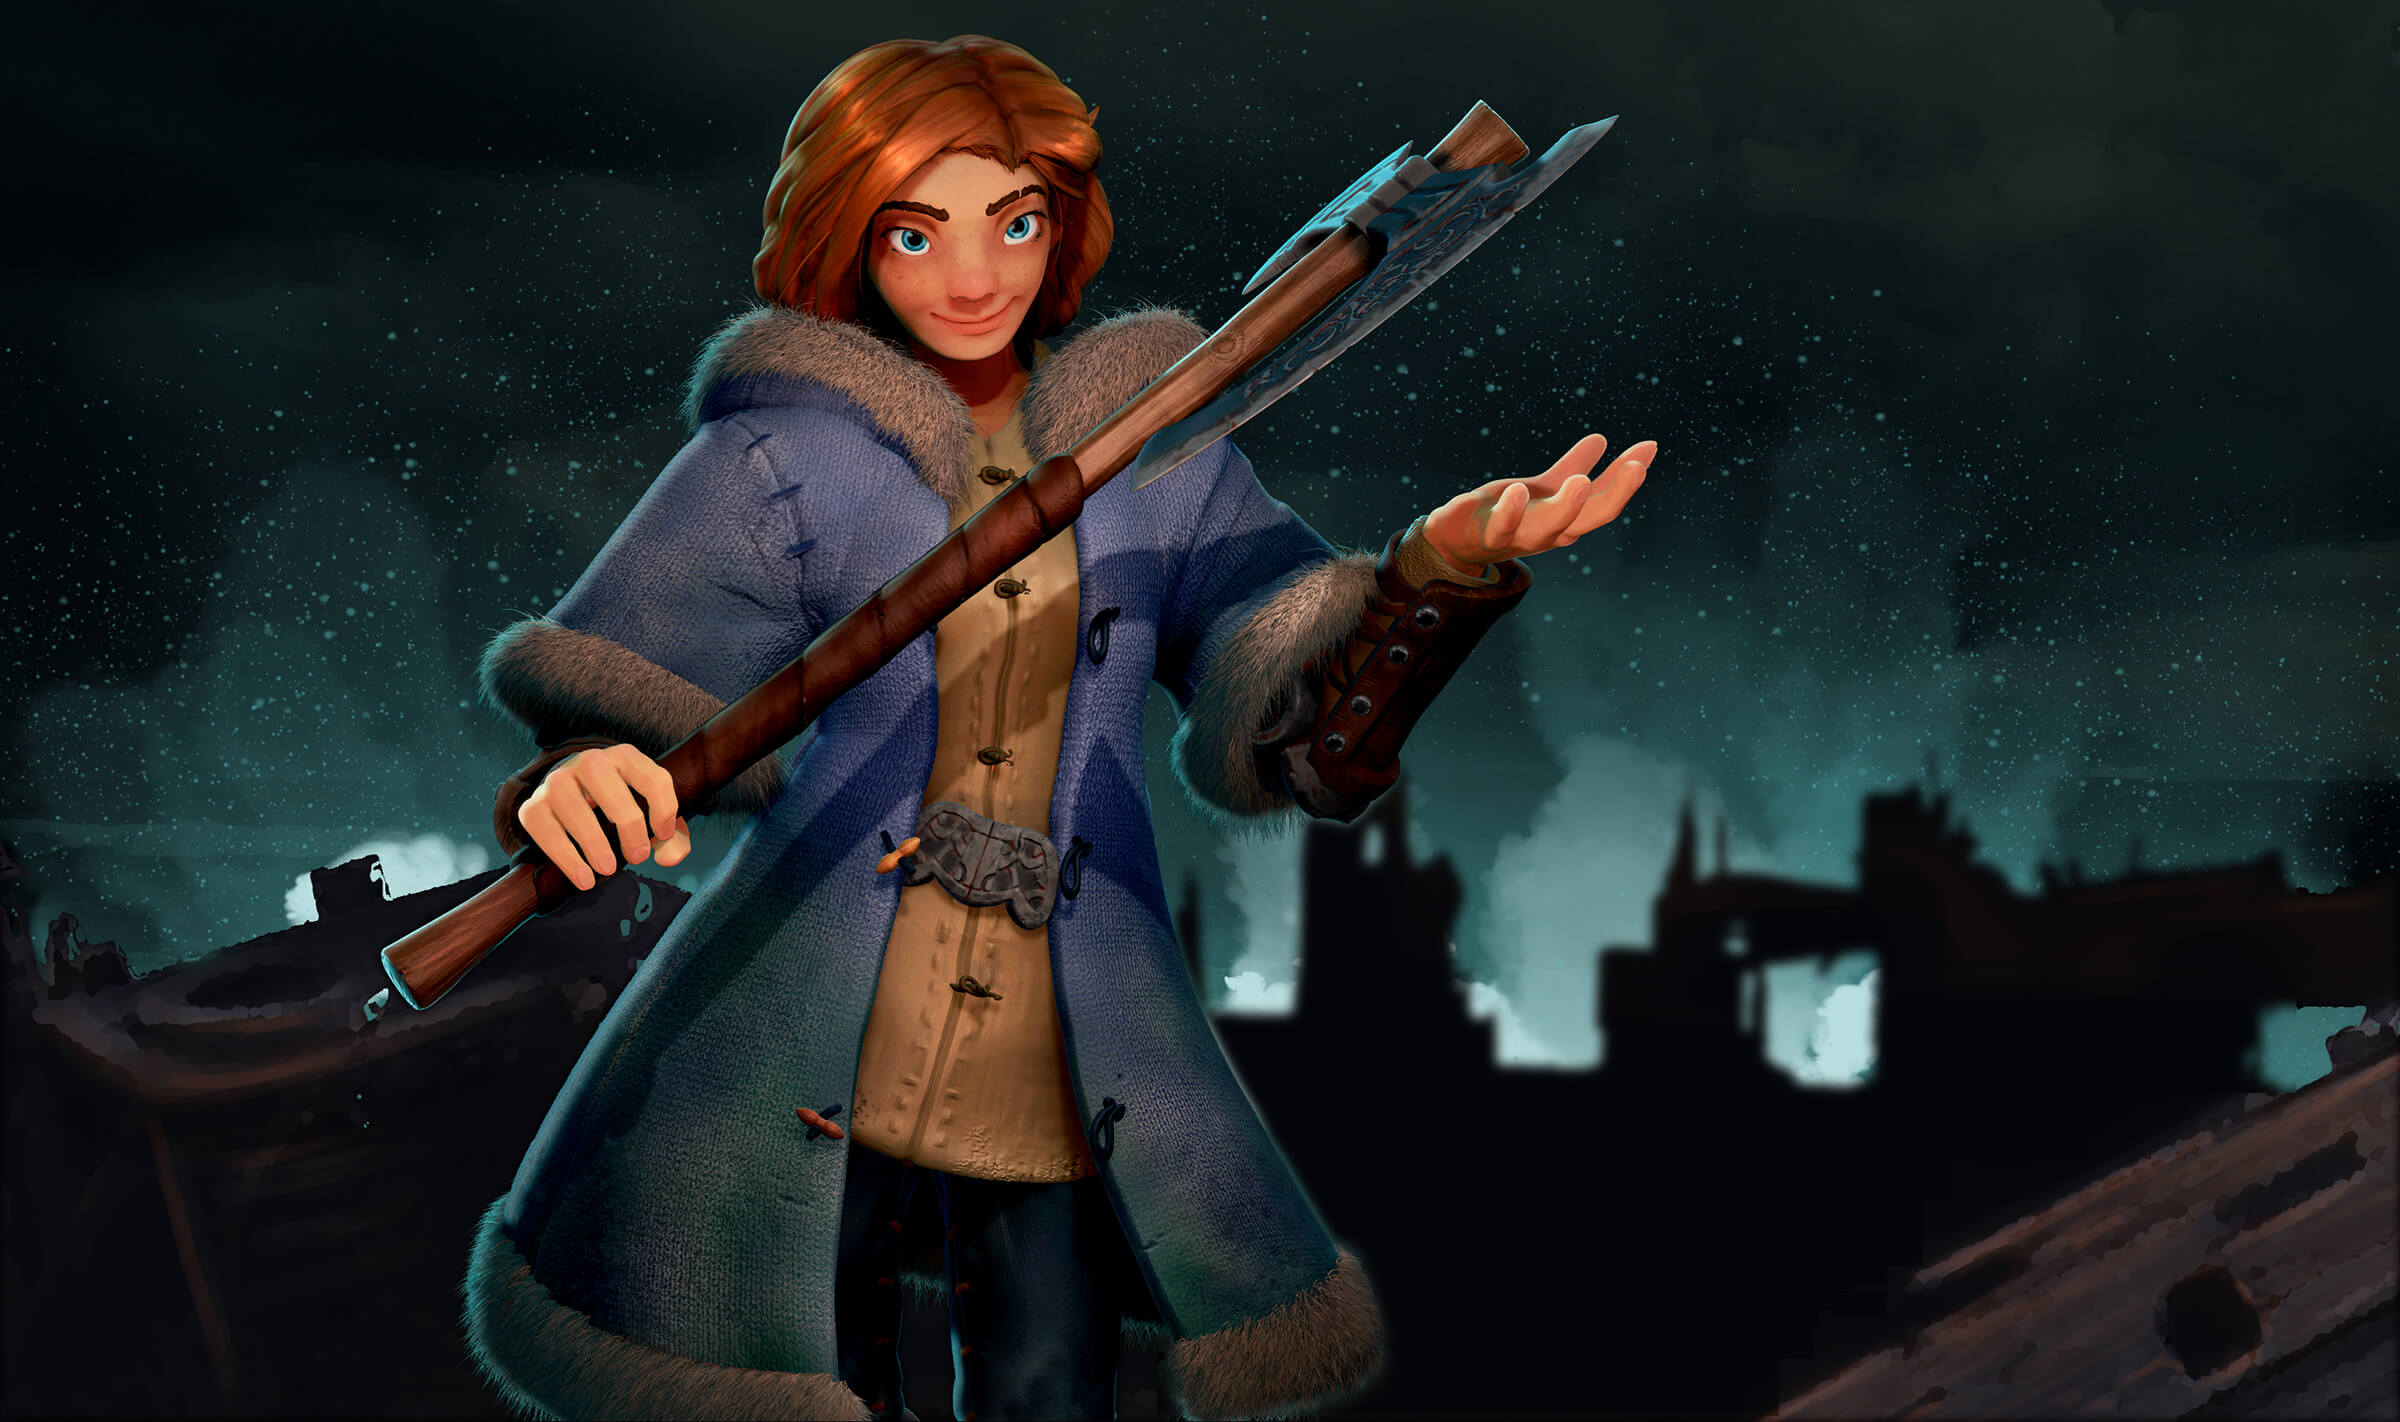 computer-generated 3D model of a character in a long, fur-trimmed coat carrying a battle axe